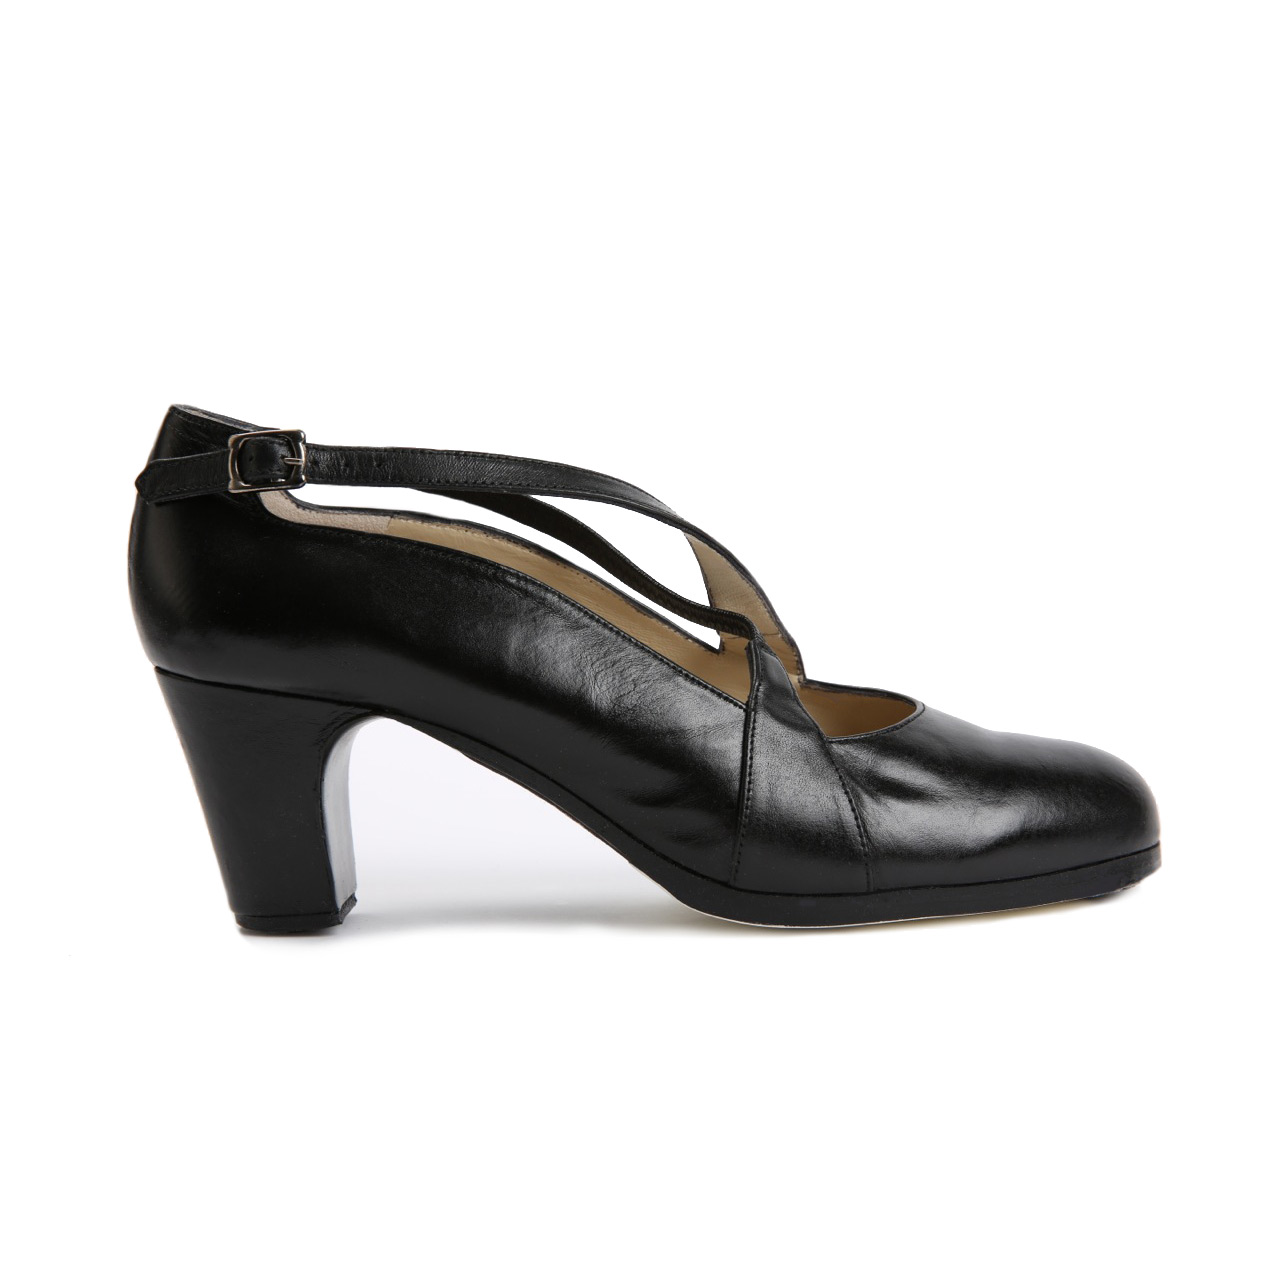 Flamenco dance Shoe Cruzado II Black